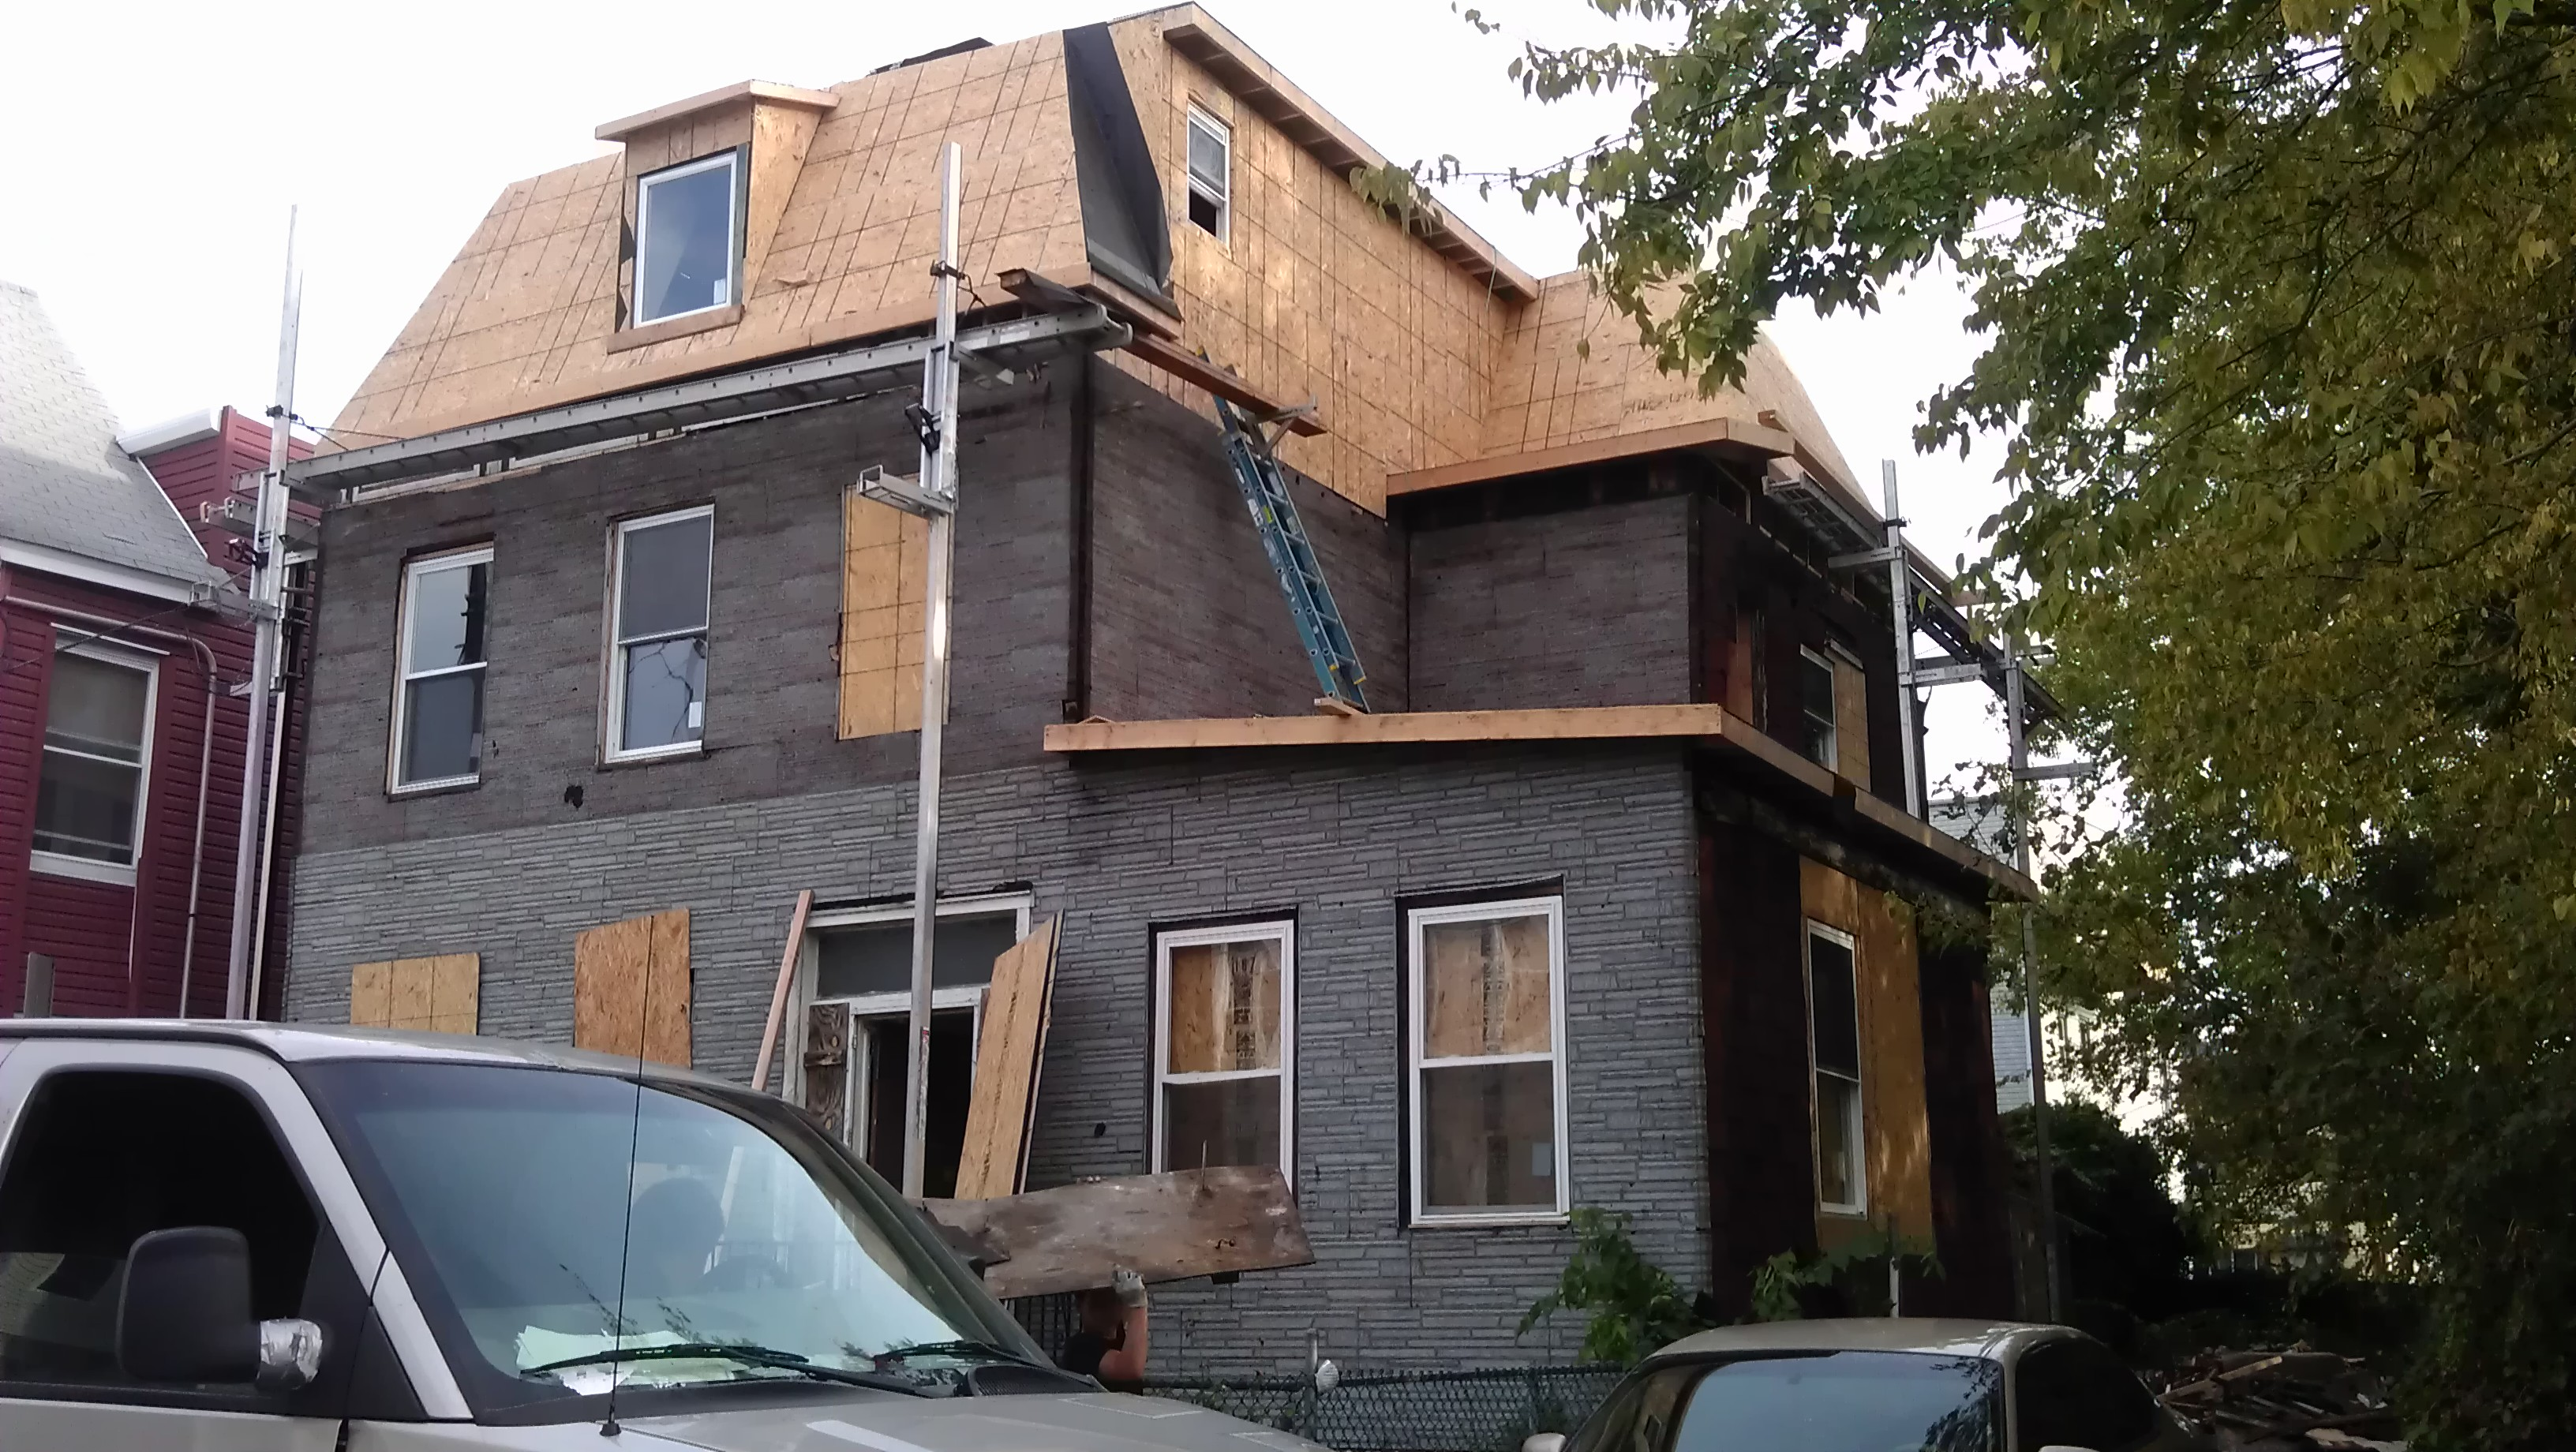 Roof Rebuild 4 Vreeland Terrace, Jersey City